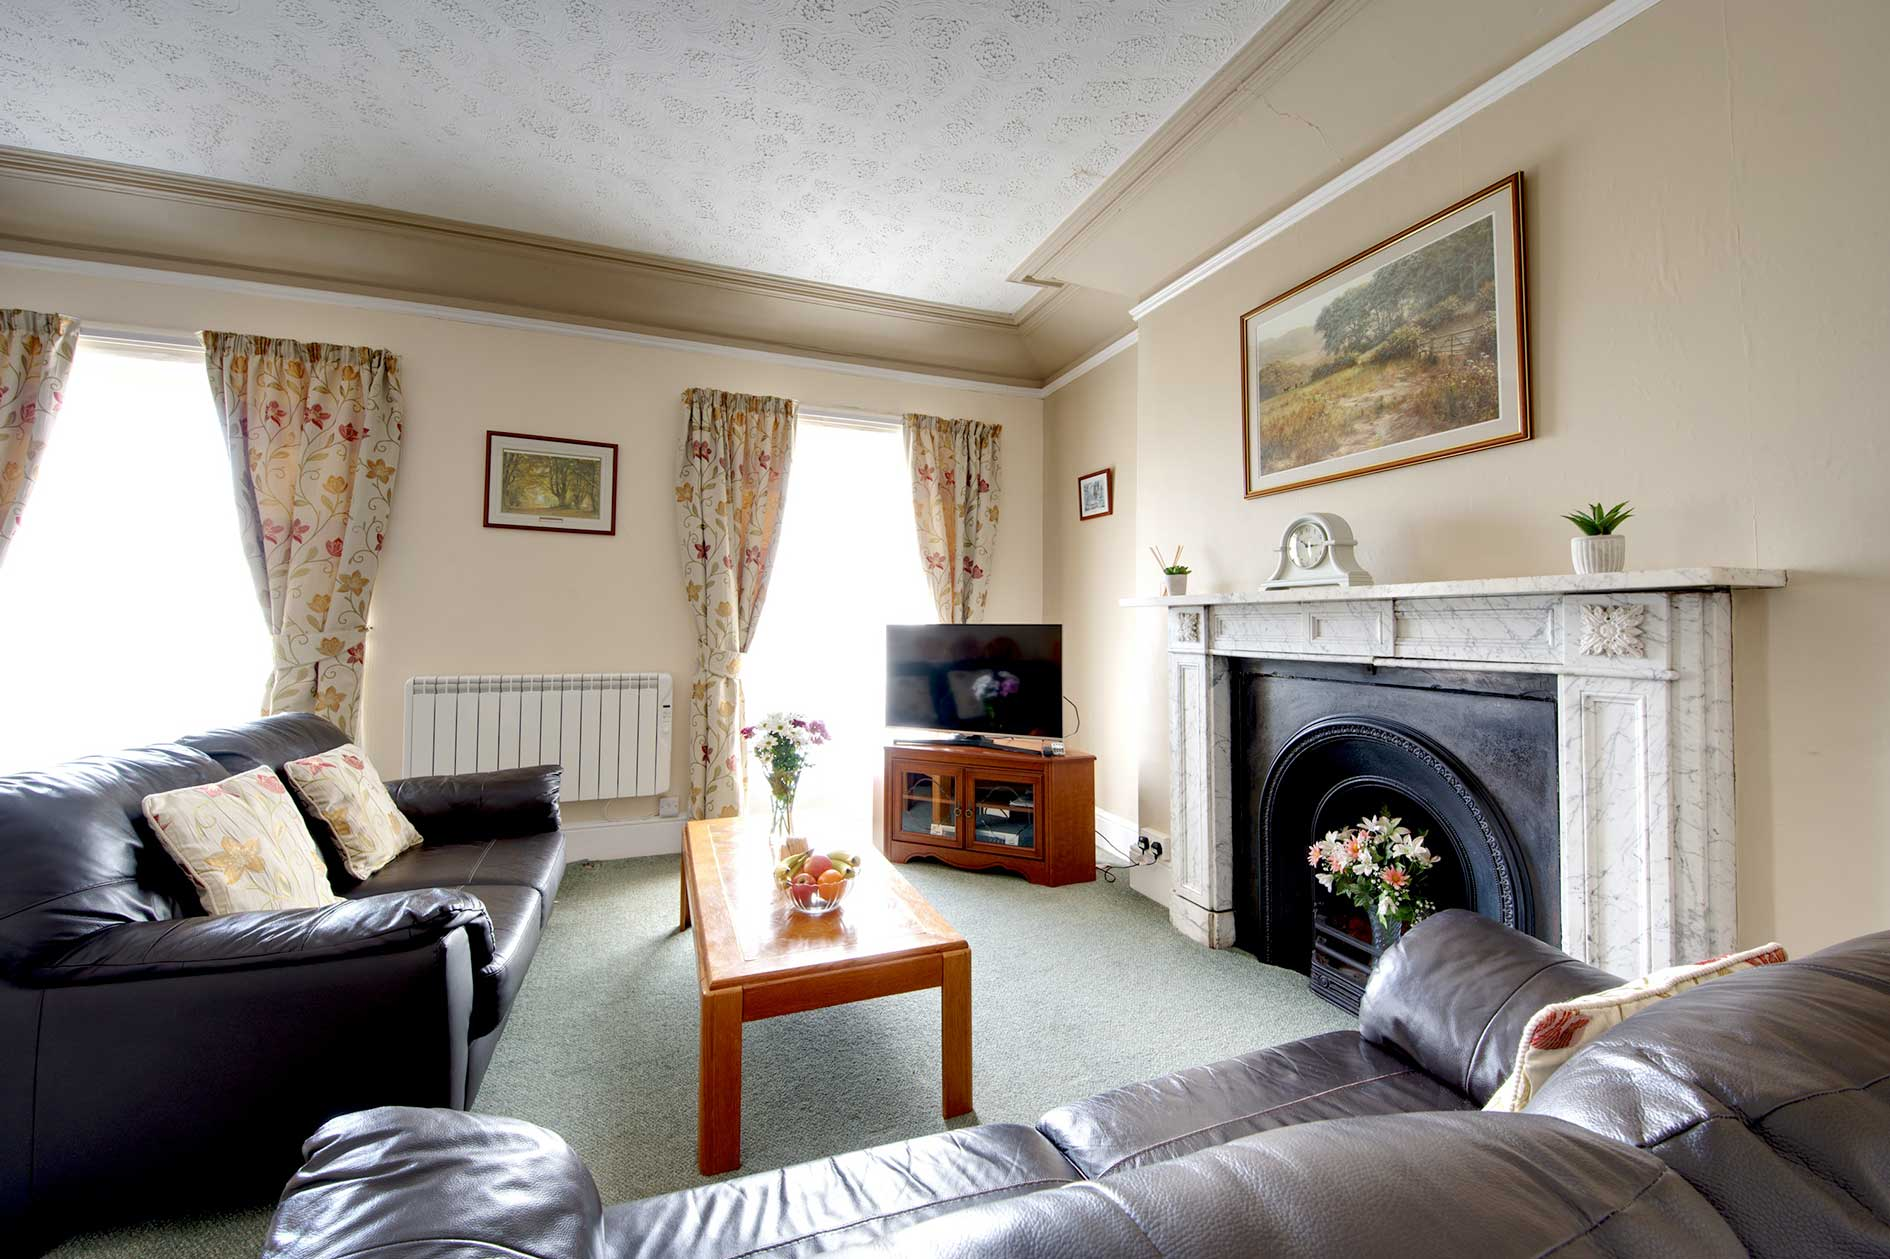 Living Room With Brown Leather Sofas, Feature Fireplace And Red Floral Curtains